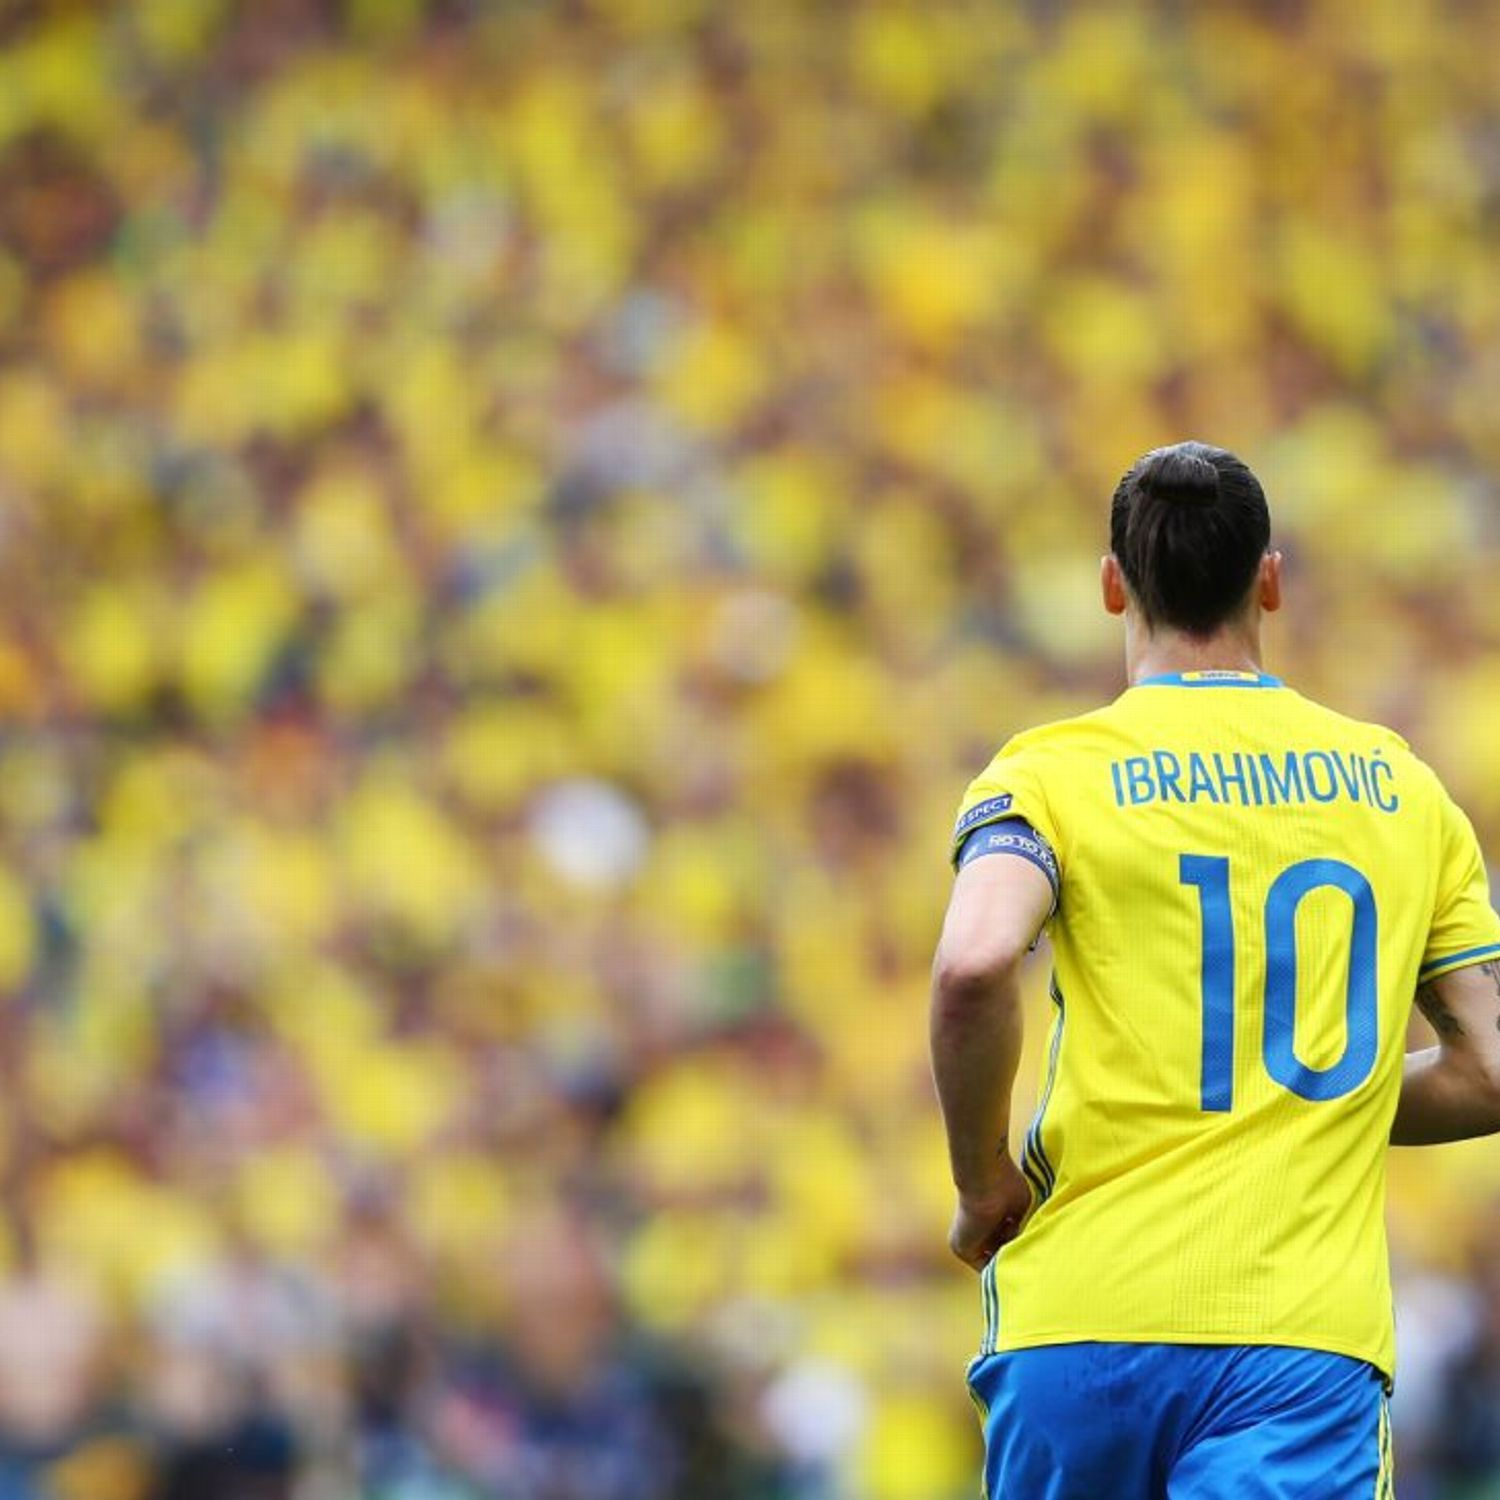 Ibrahimovic's impending international retirement